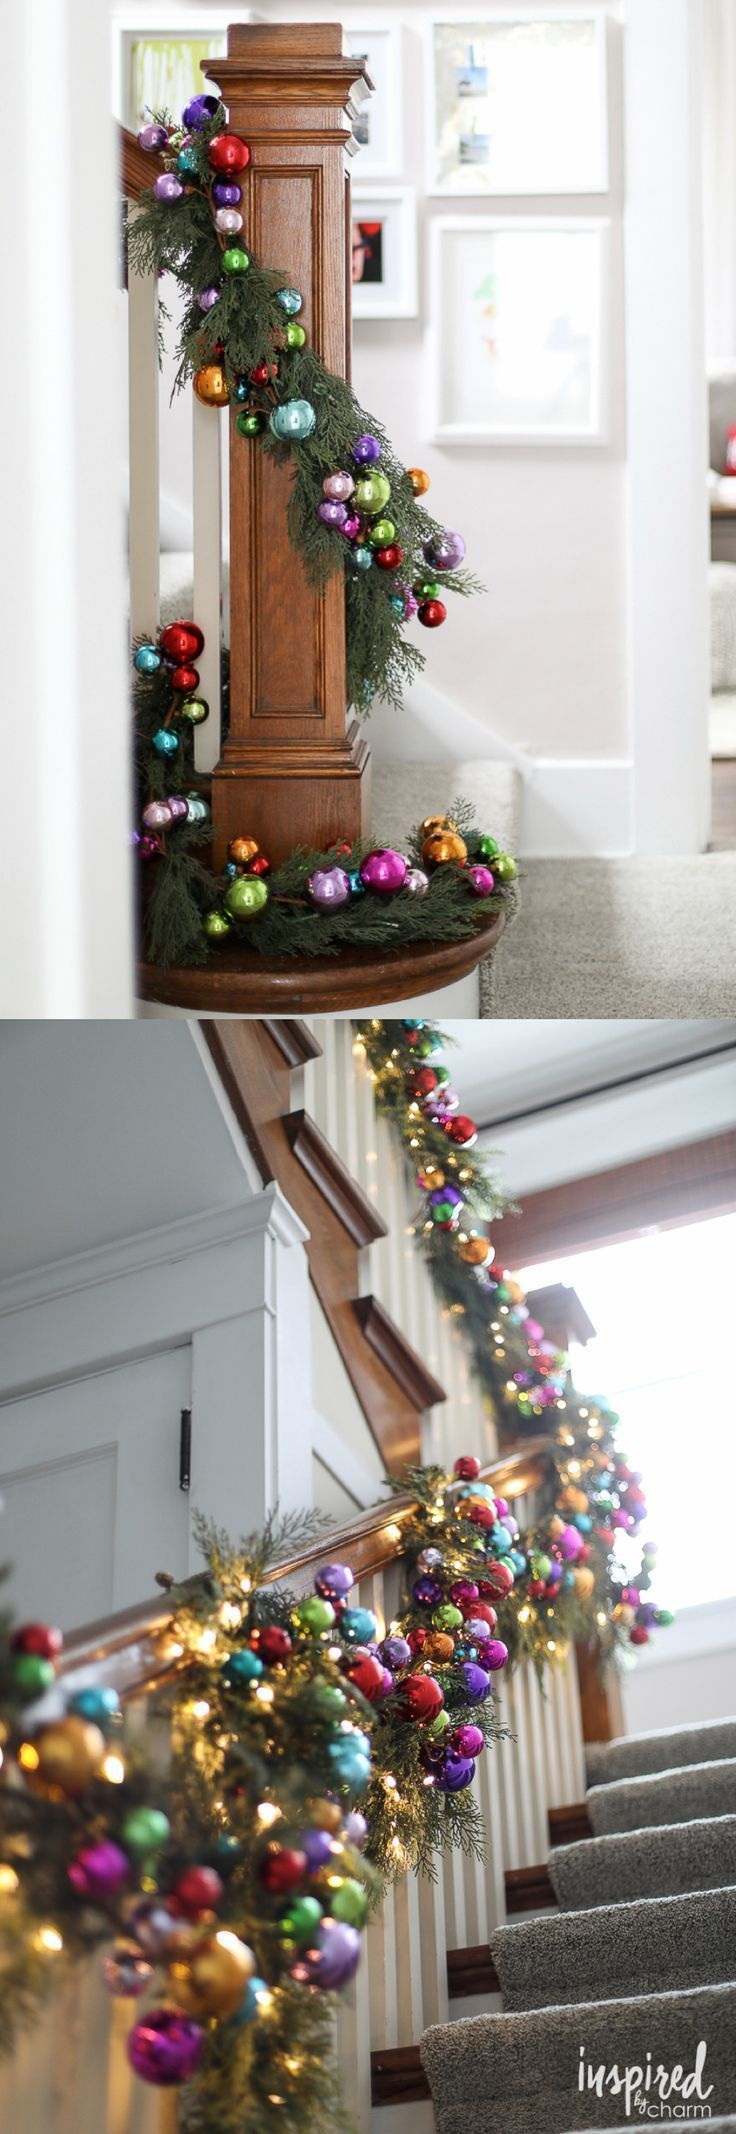 Best Colorful Christmas Ornament And Pine Banister Garland 400 x 300